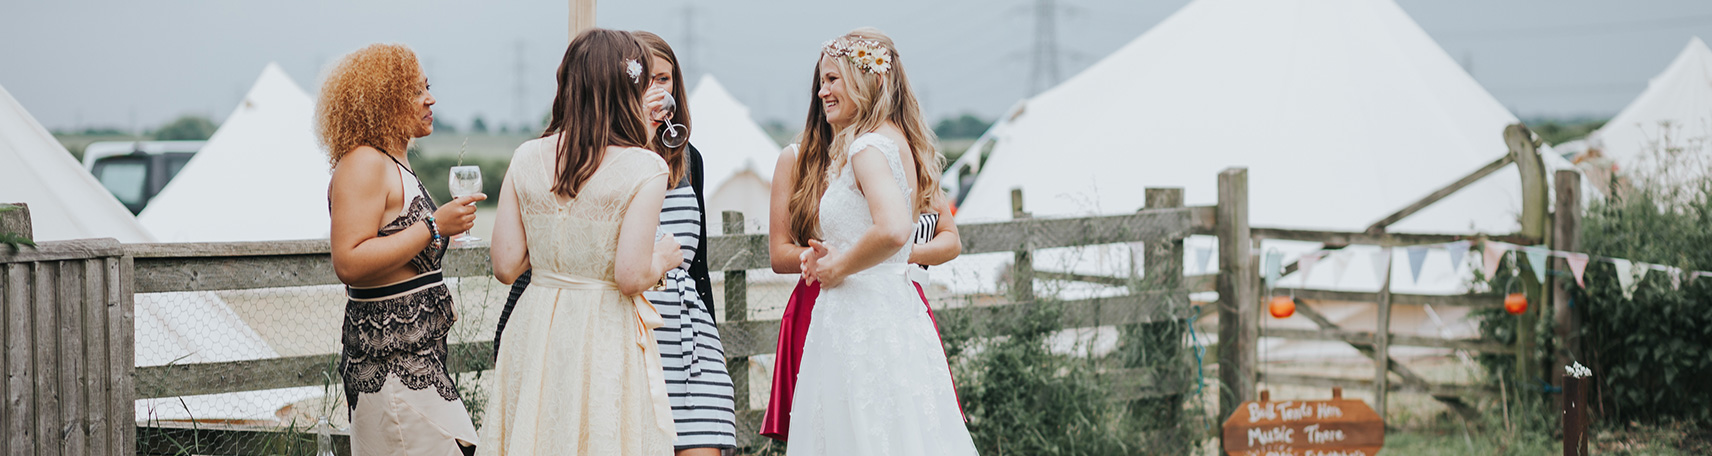 Ladies drinking wine at a bell tent wedding event